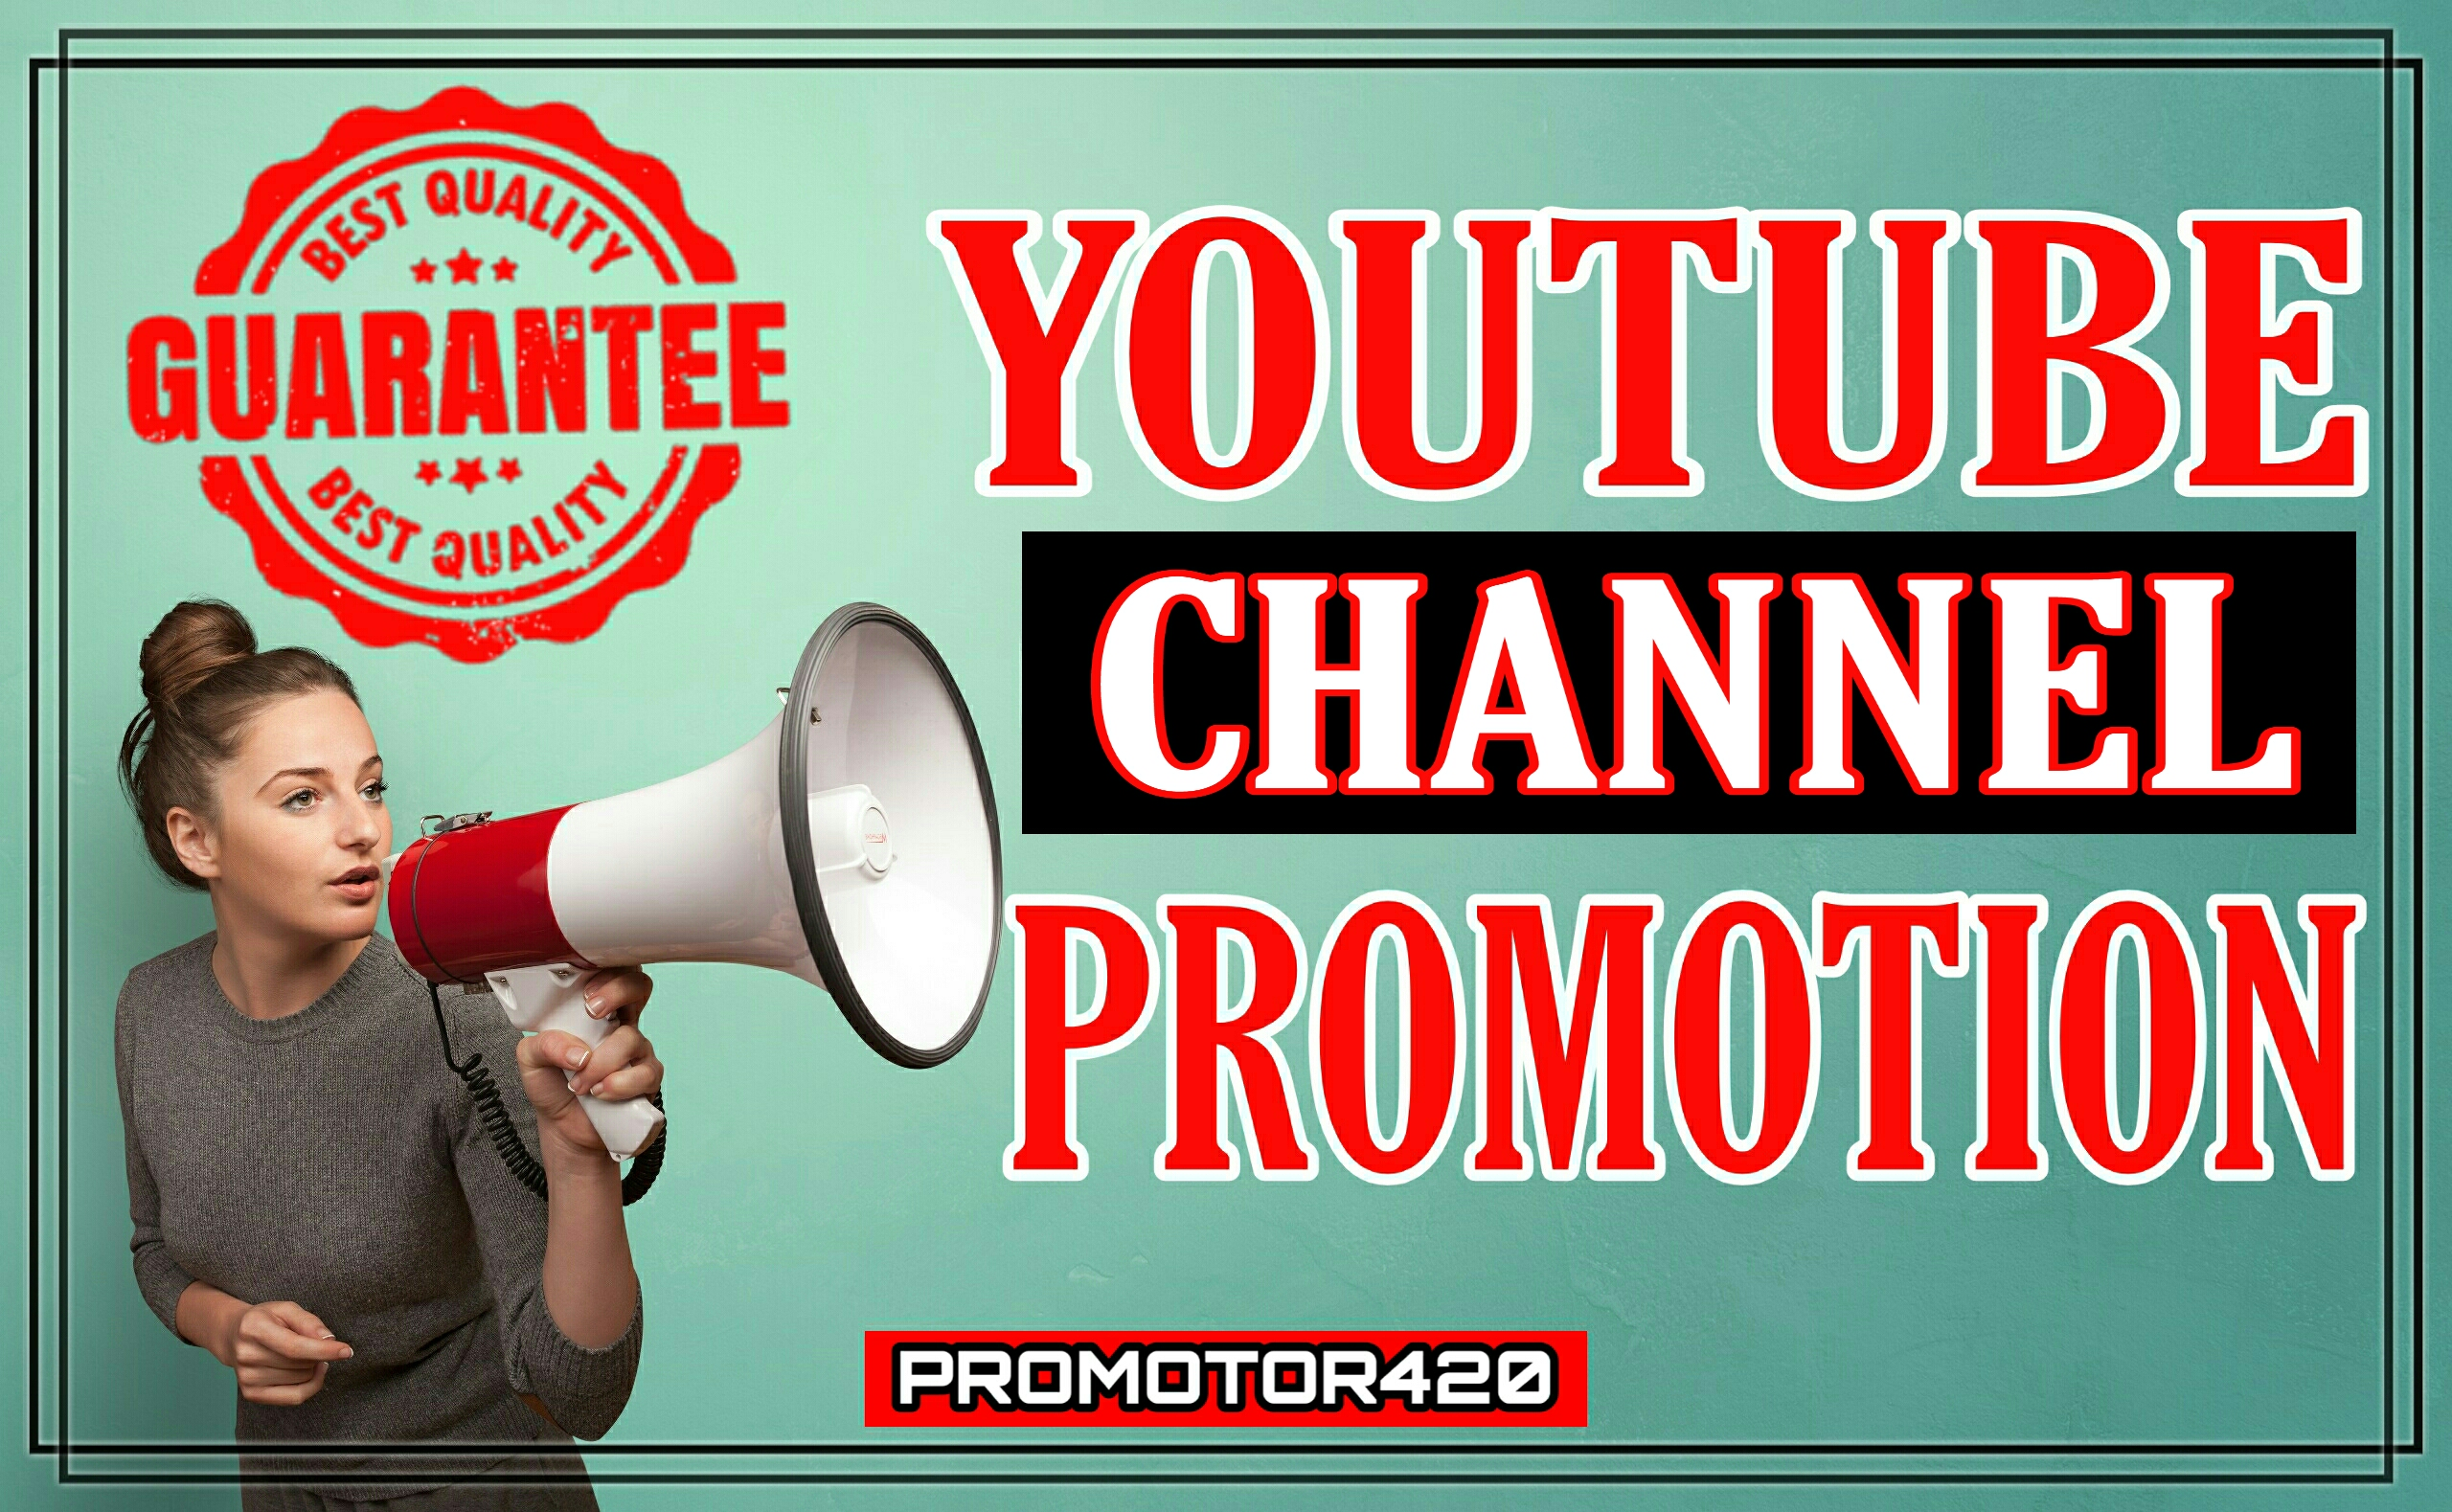 Best service for youtube promotion and marketing